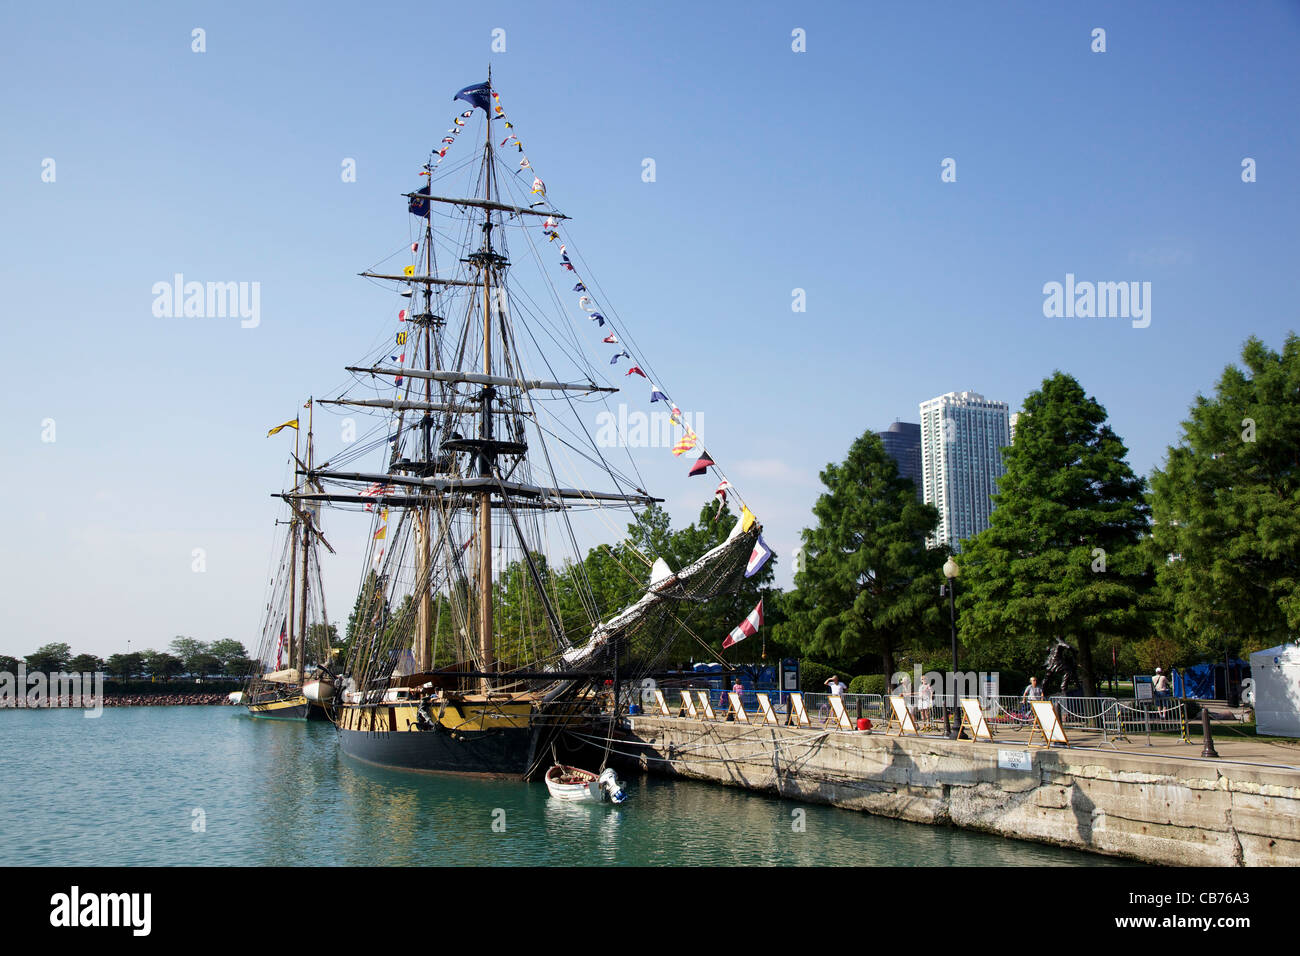 The Niagara and the Pride of Baltimore. Tall Ships 2011 Navy Pier, Chicago, Illinois. Stock Photo